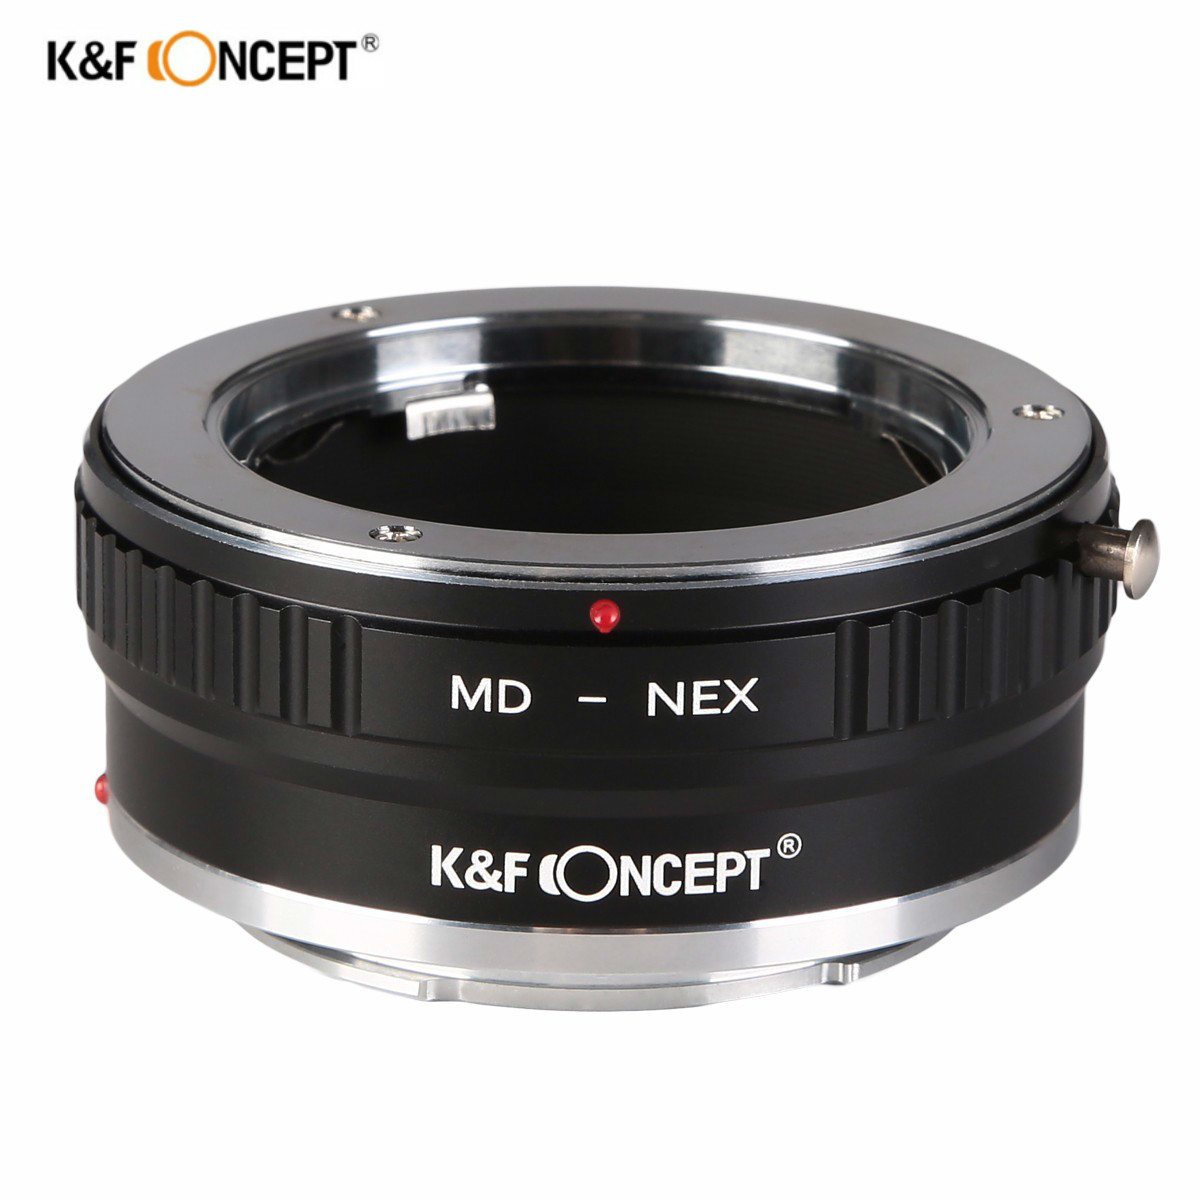 K&F Concept All-copper interface high-precision lens adapter for Minolta MC/MD Mount Lens to Sony NEX NEX-5 7 3 F5 Emount Camera fotga md eosm minolta md mc lens to canon m mount adapter black silver